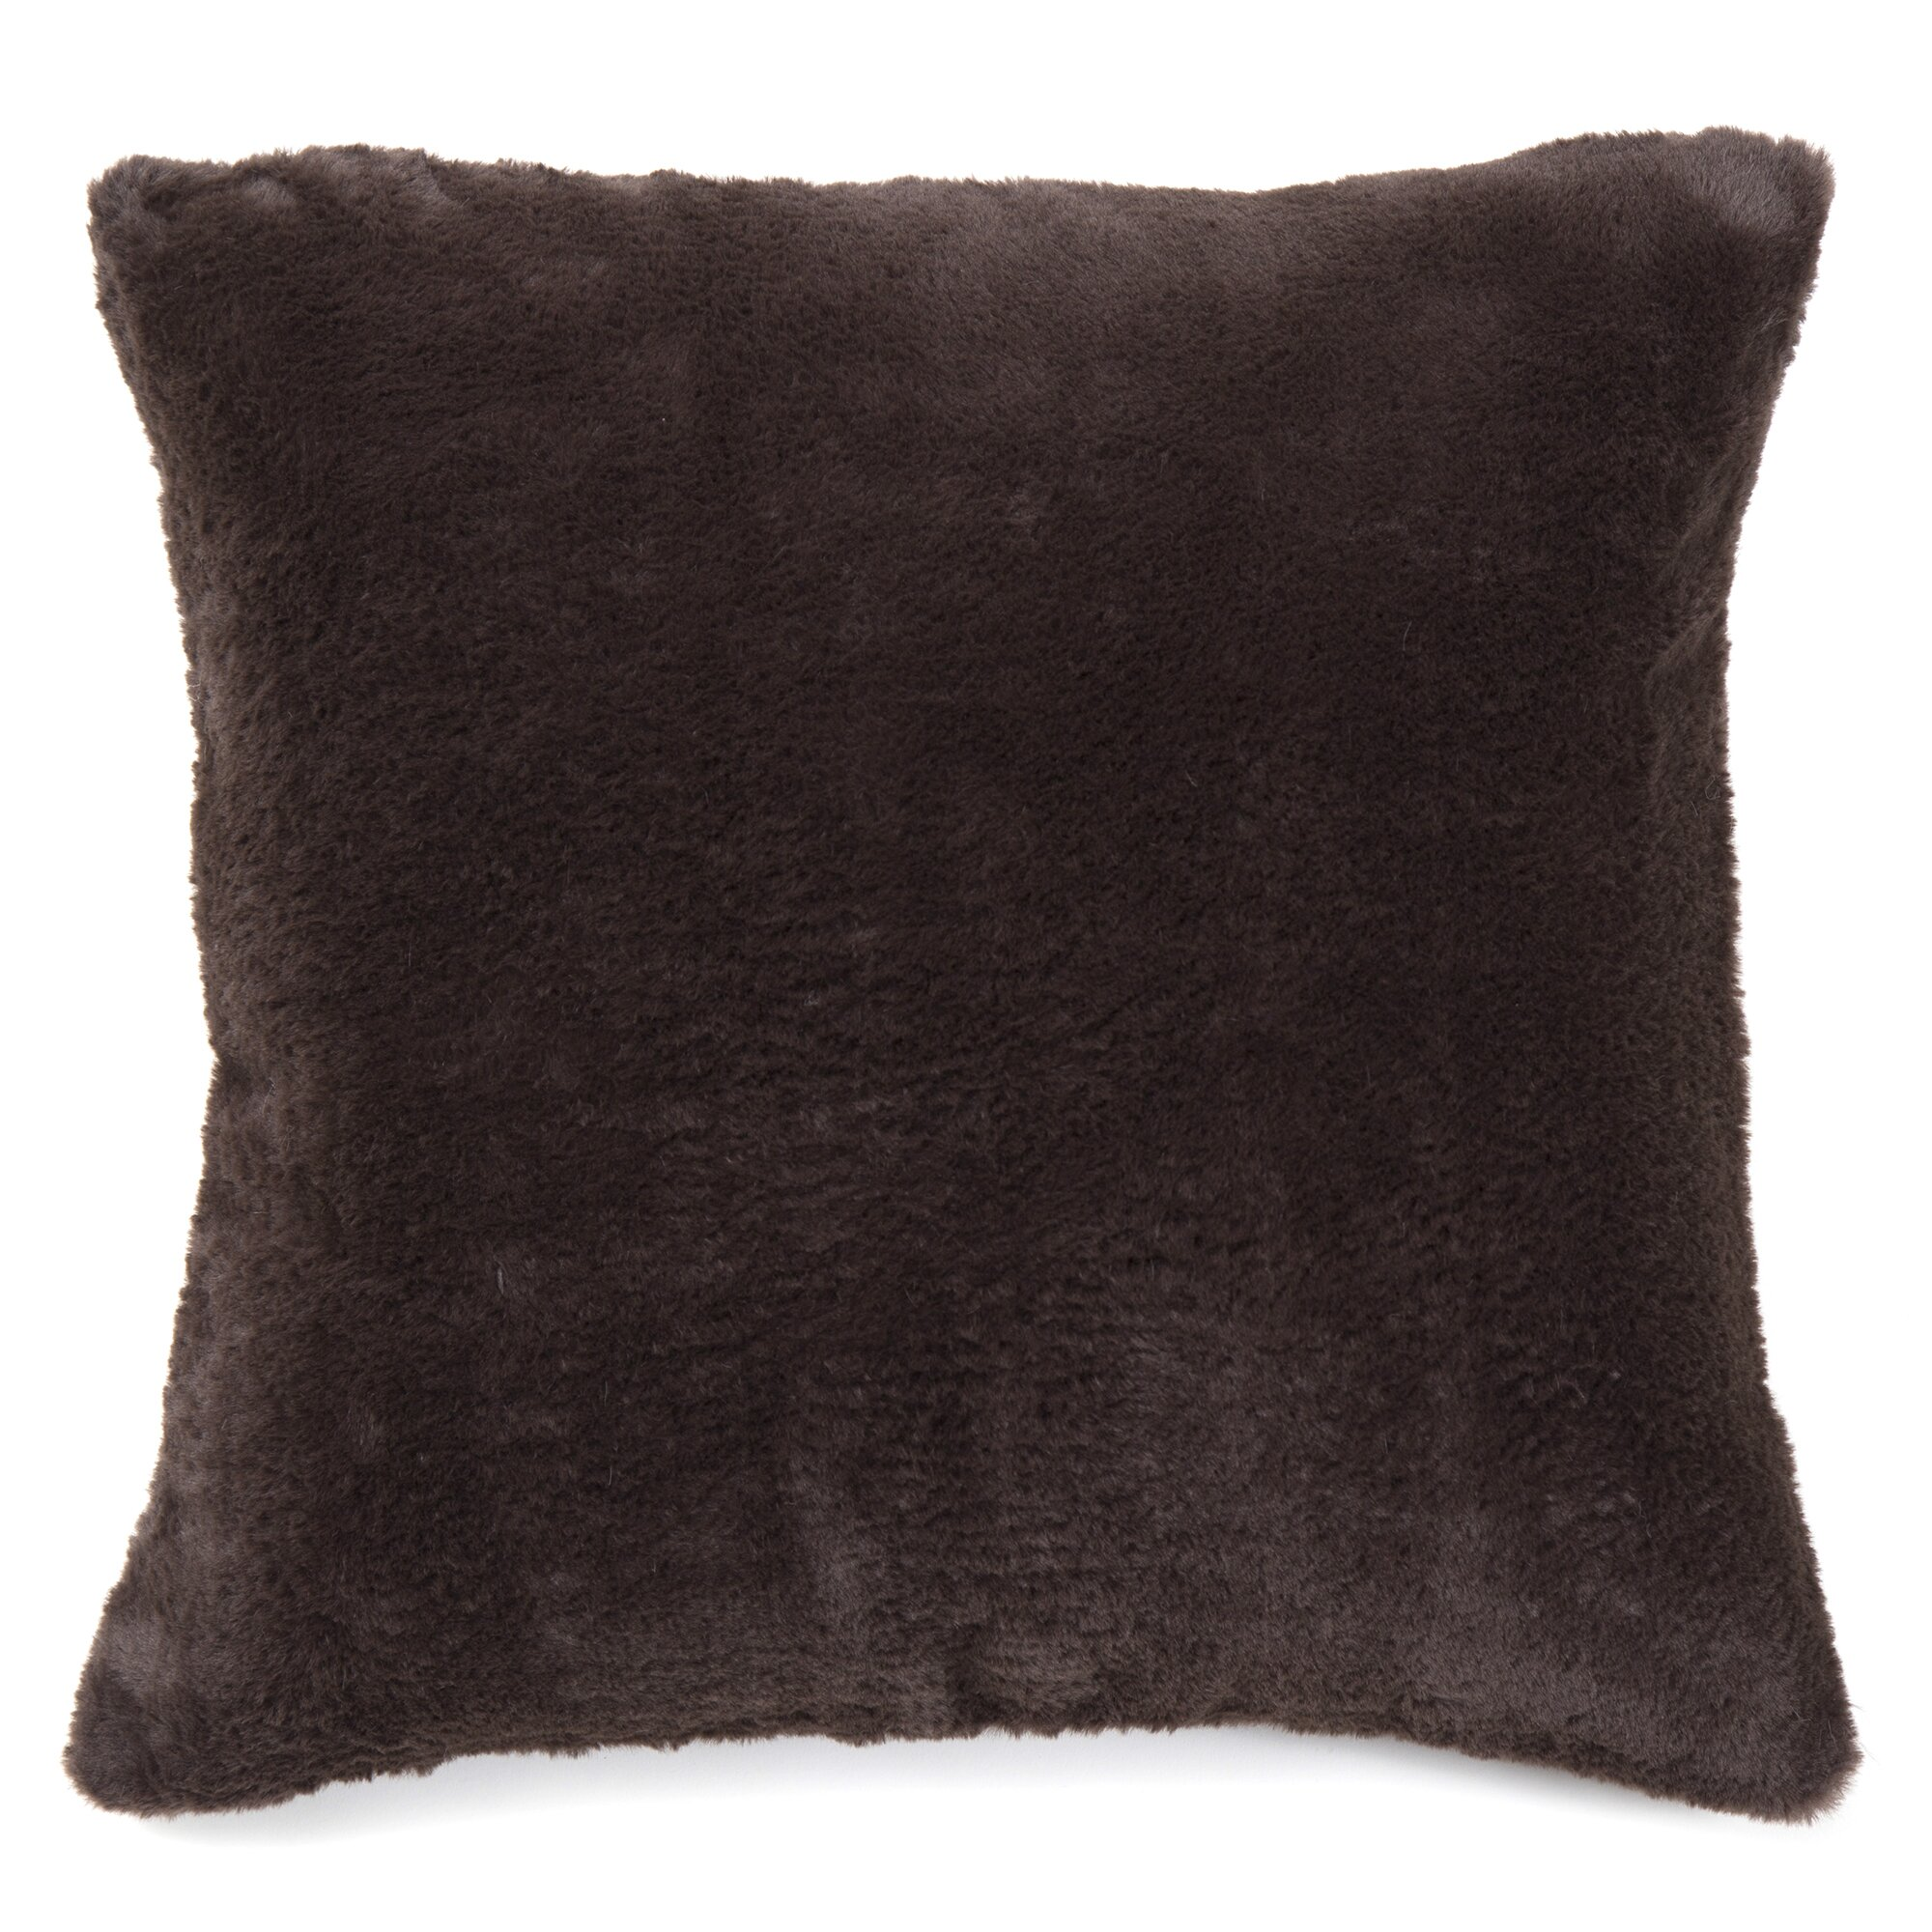 Best Home Fashion, Inc. Luxe Faux Fur Pom Pom Throw Blanket and Pillow Set & Reviews Wayfair